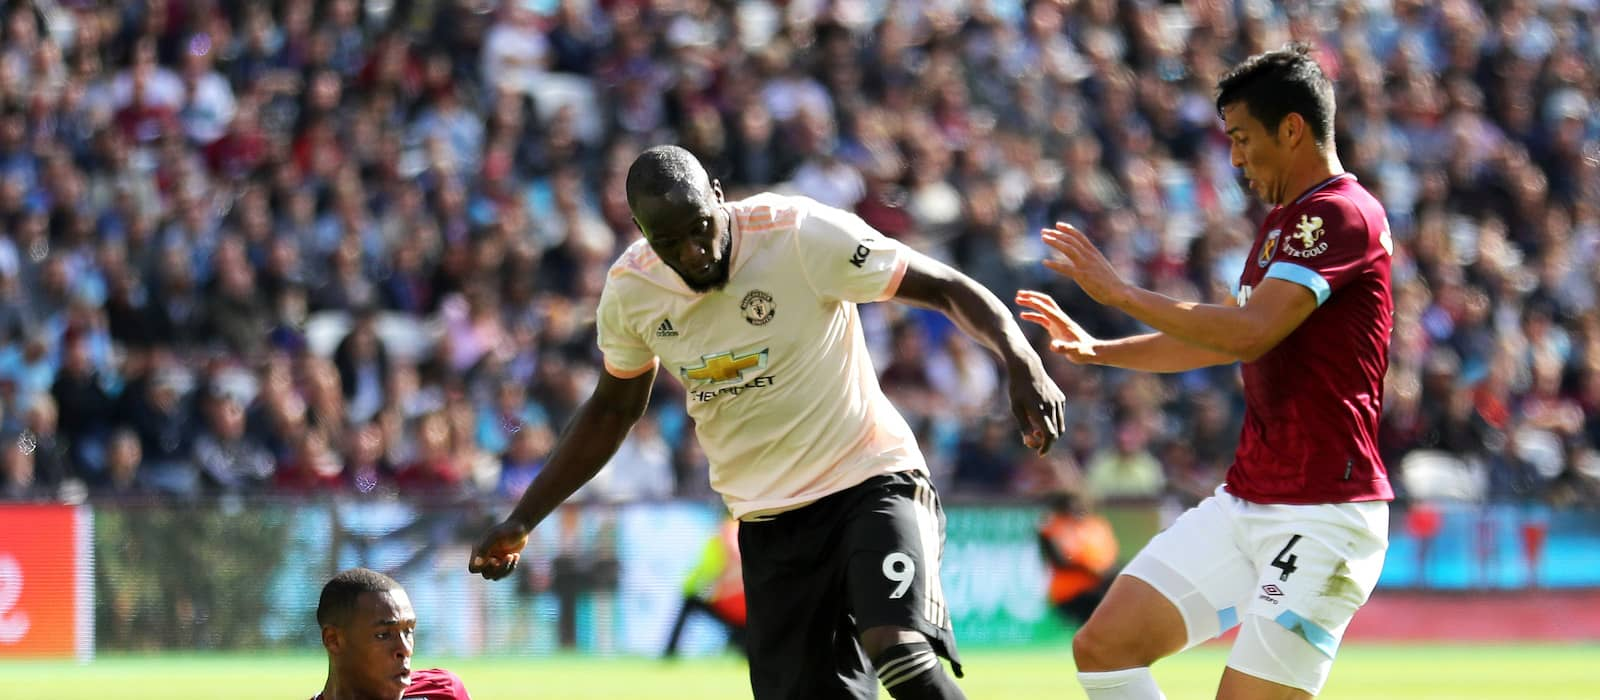 Paul Scholes slams Manchester United players' attitude in 3-1 defeat to West Ham